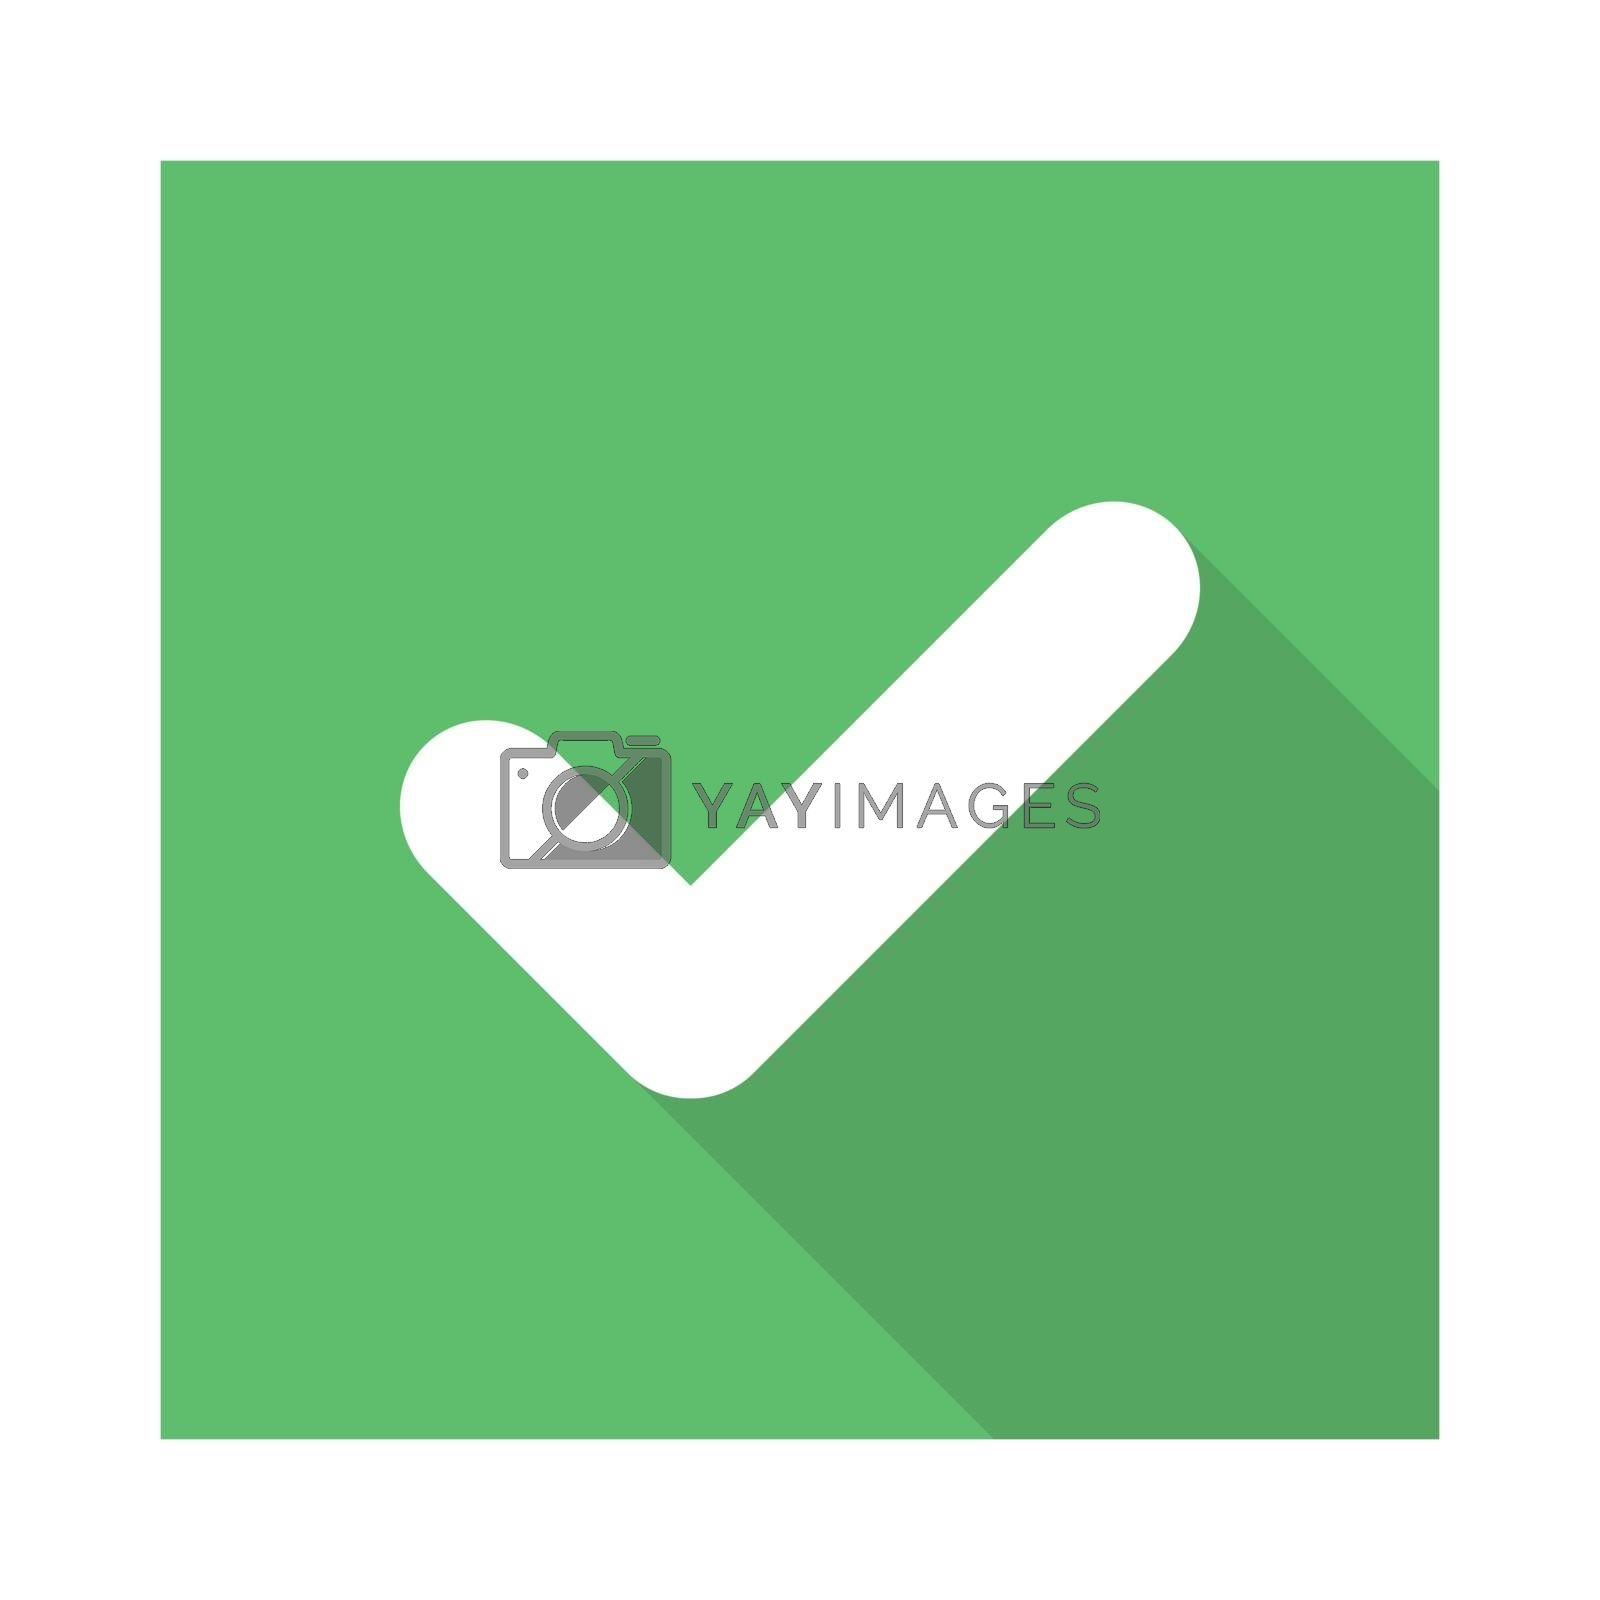 Check marks, Tick marks, Accepted, Approved, Yes, Correct, Ok, Right Choices, Task Completion, Voting. - vector mark symbols in green. Isolated icon. Flat style vector illustration.